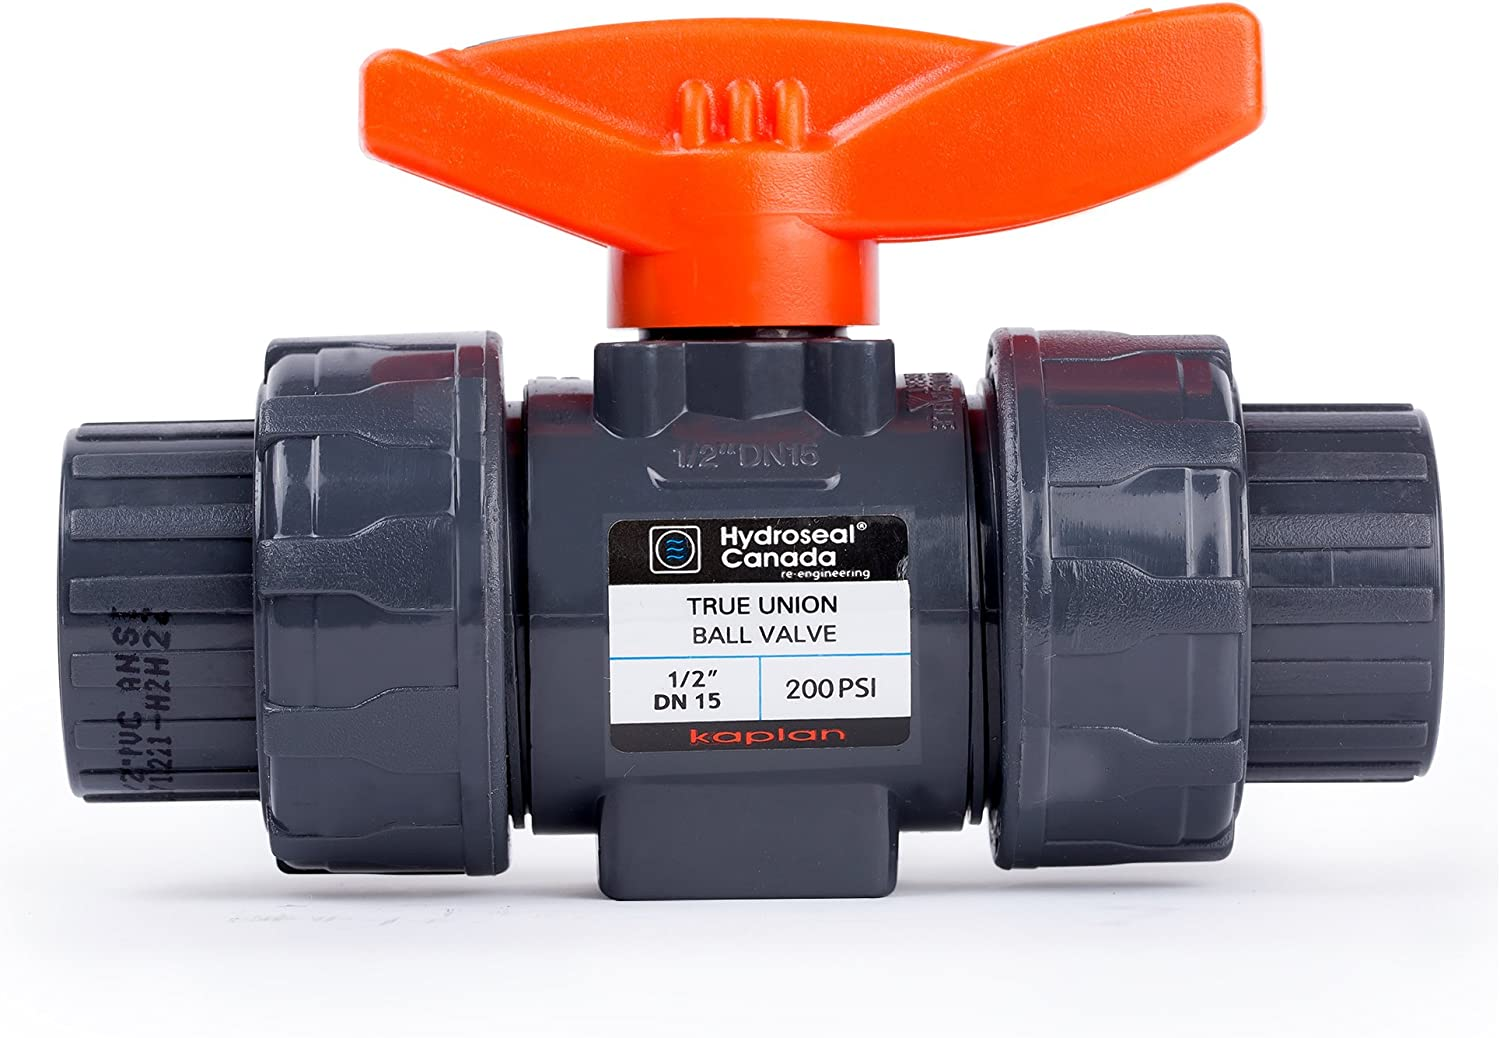 """HYDROSEAL Kaplan 1/2"""" PVC True Union Ball Valve with Full Port, ASTM F1970, EPDM O-Rings and Reversible PTFE Seats, Rated at 200 PSI @73F, Gray, 1/2 inch Socket (1/2"""")"""